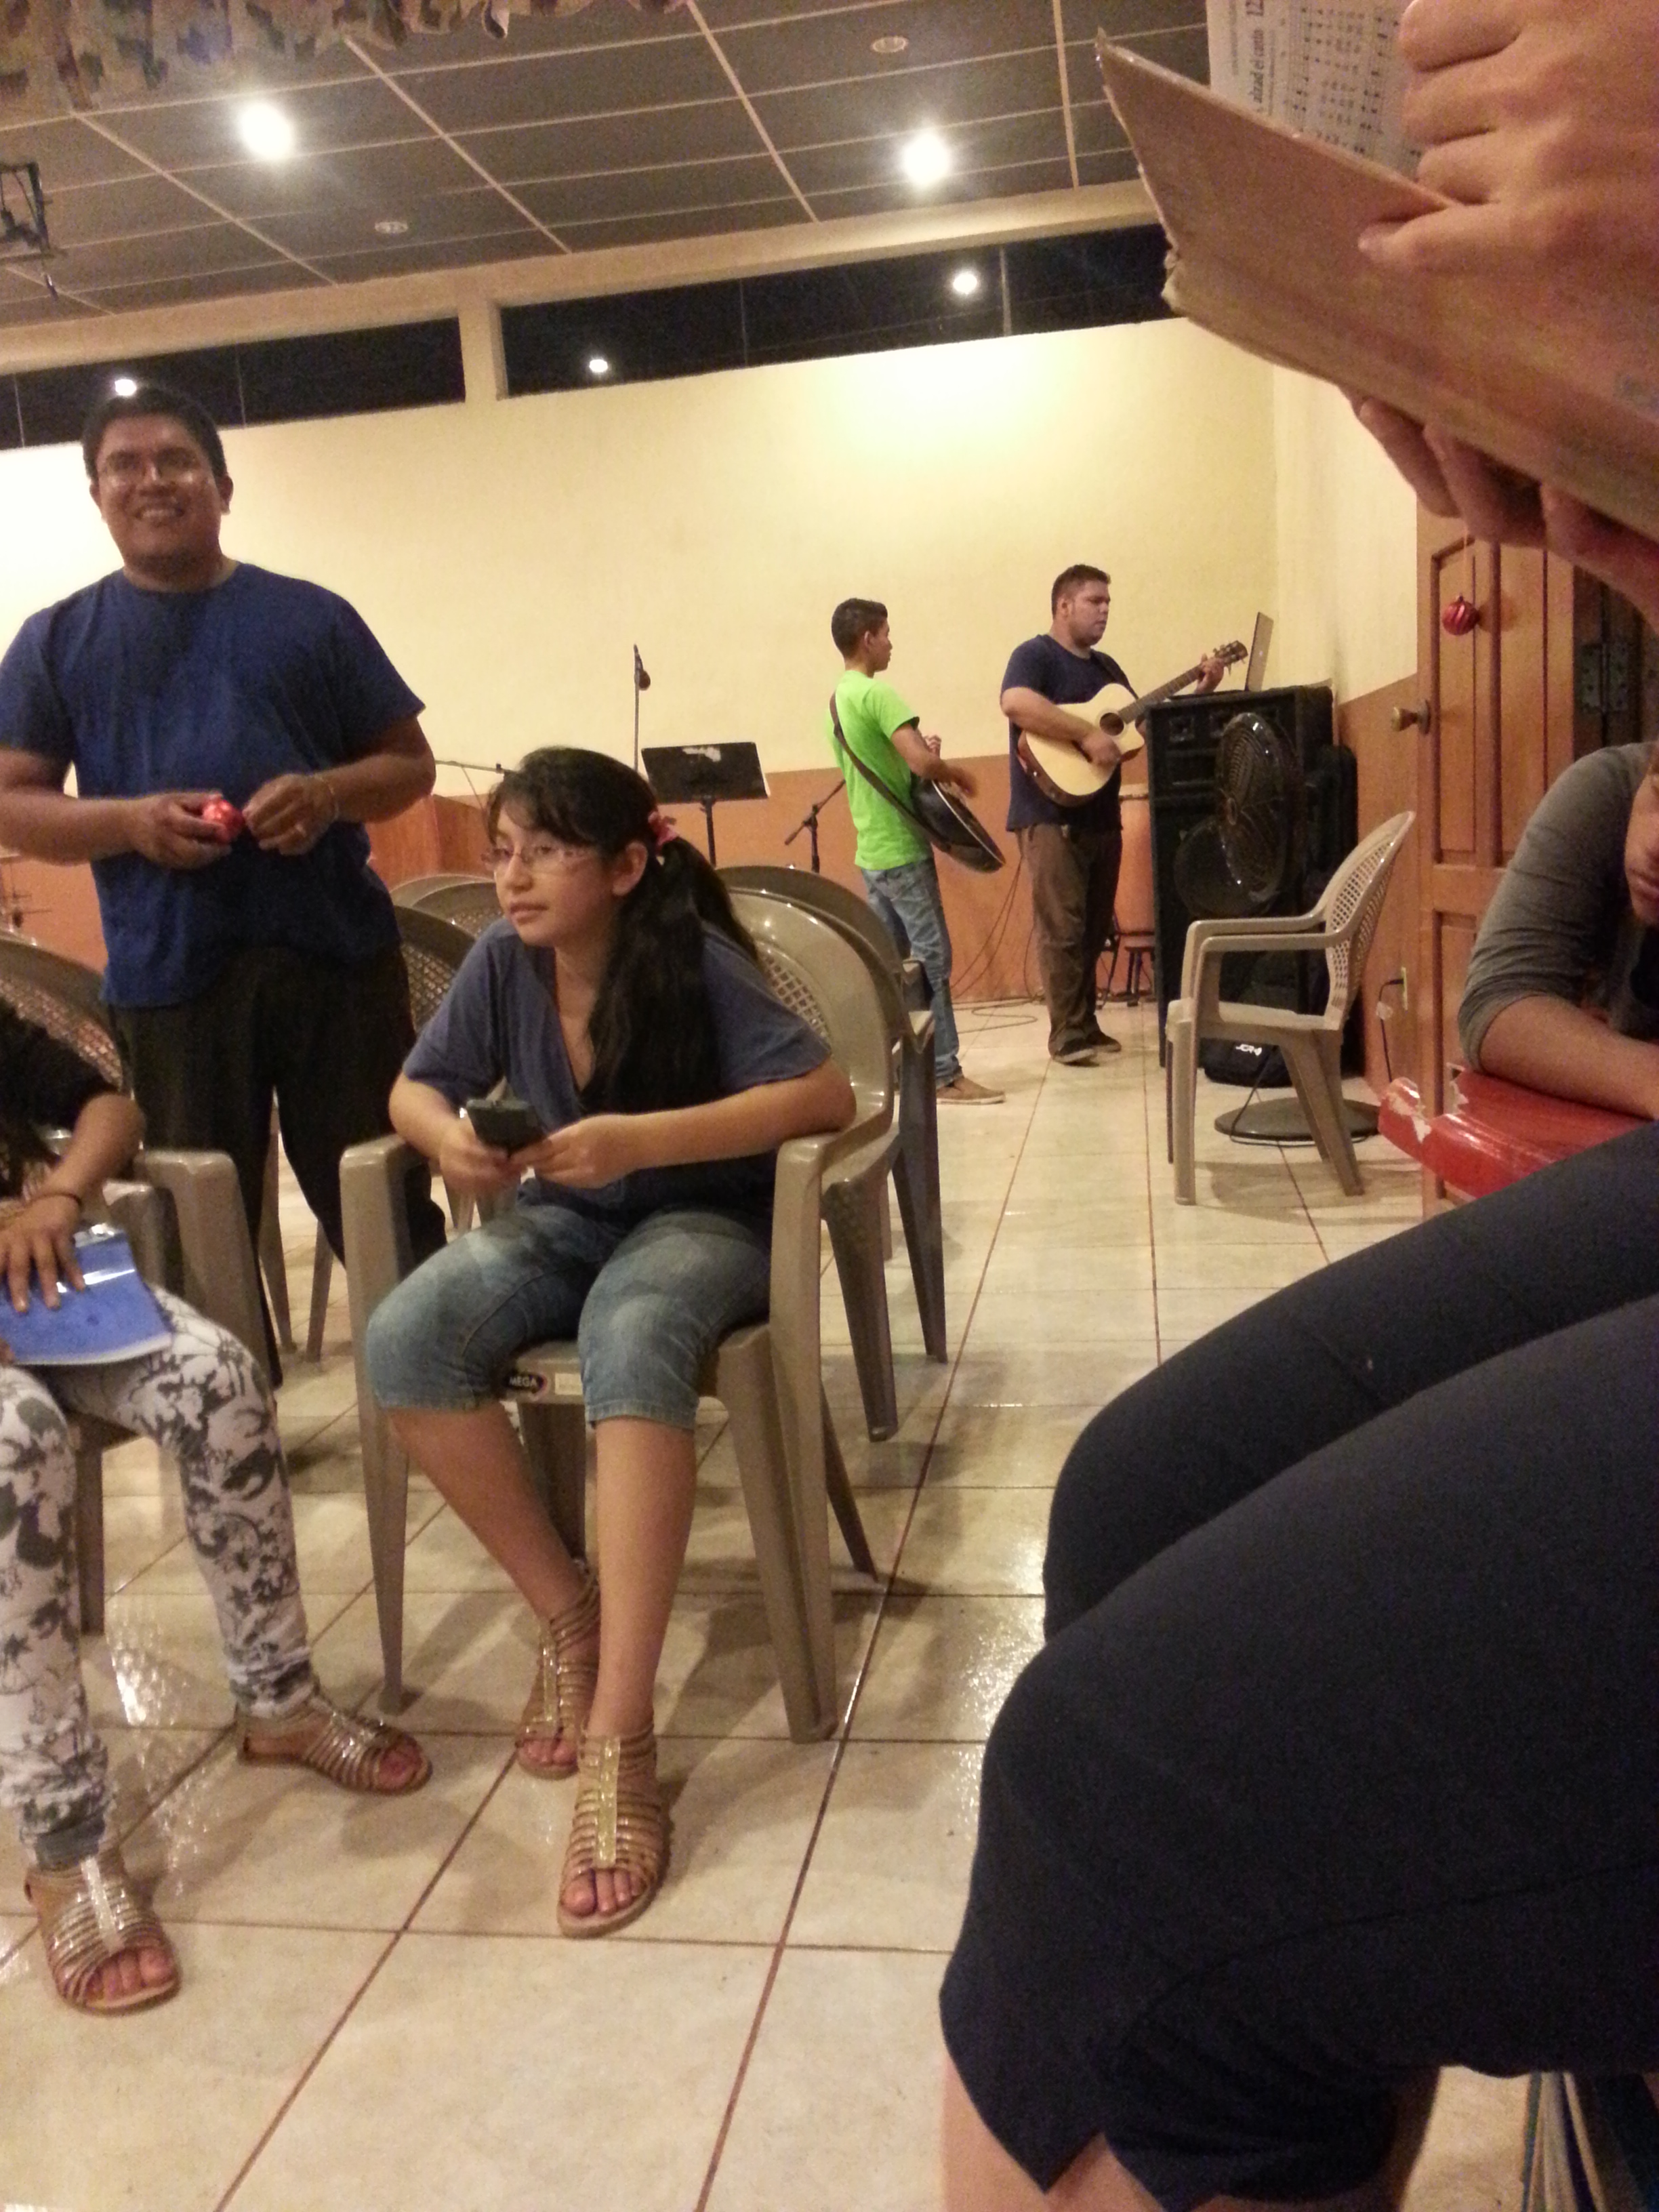 Worship practice for 23rd! Photo by Jose Sanchez